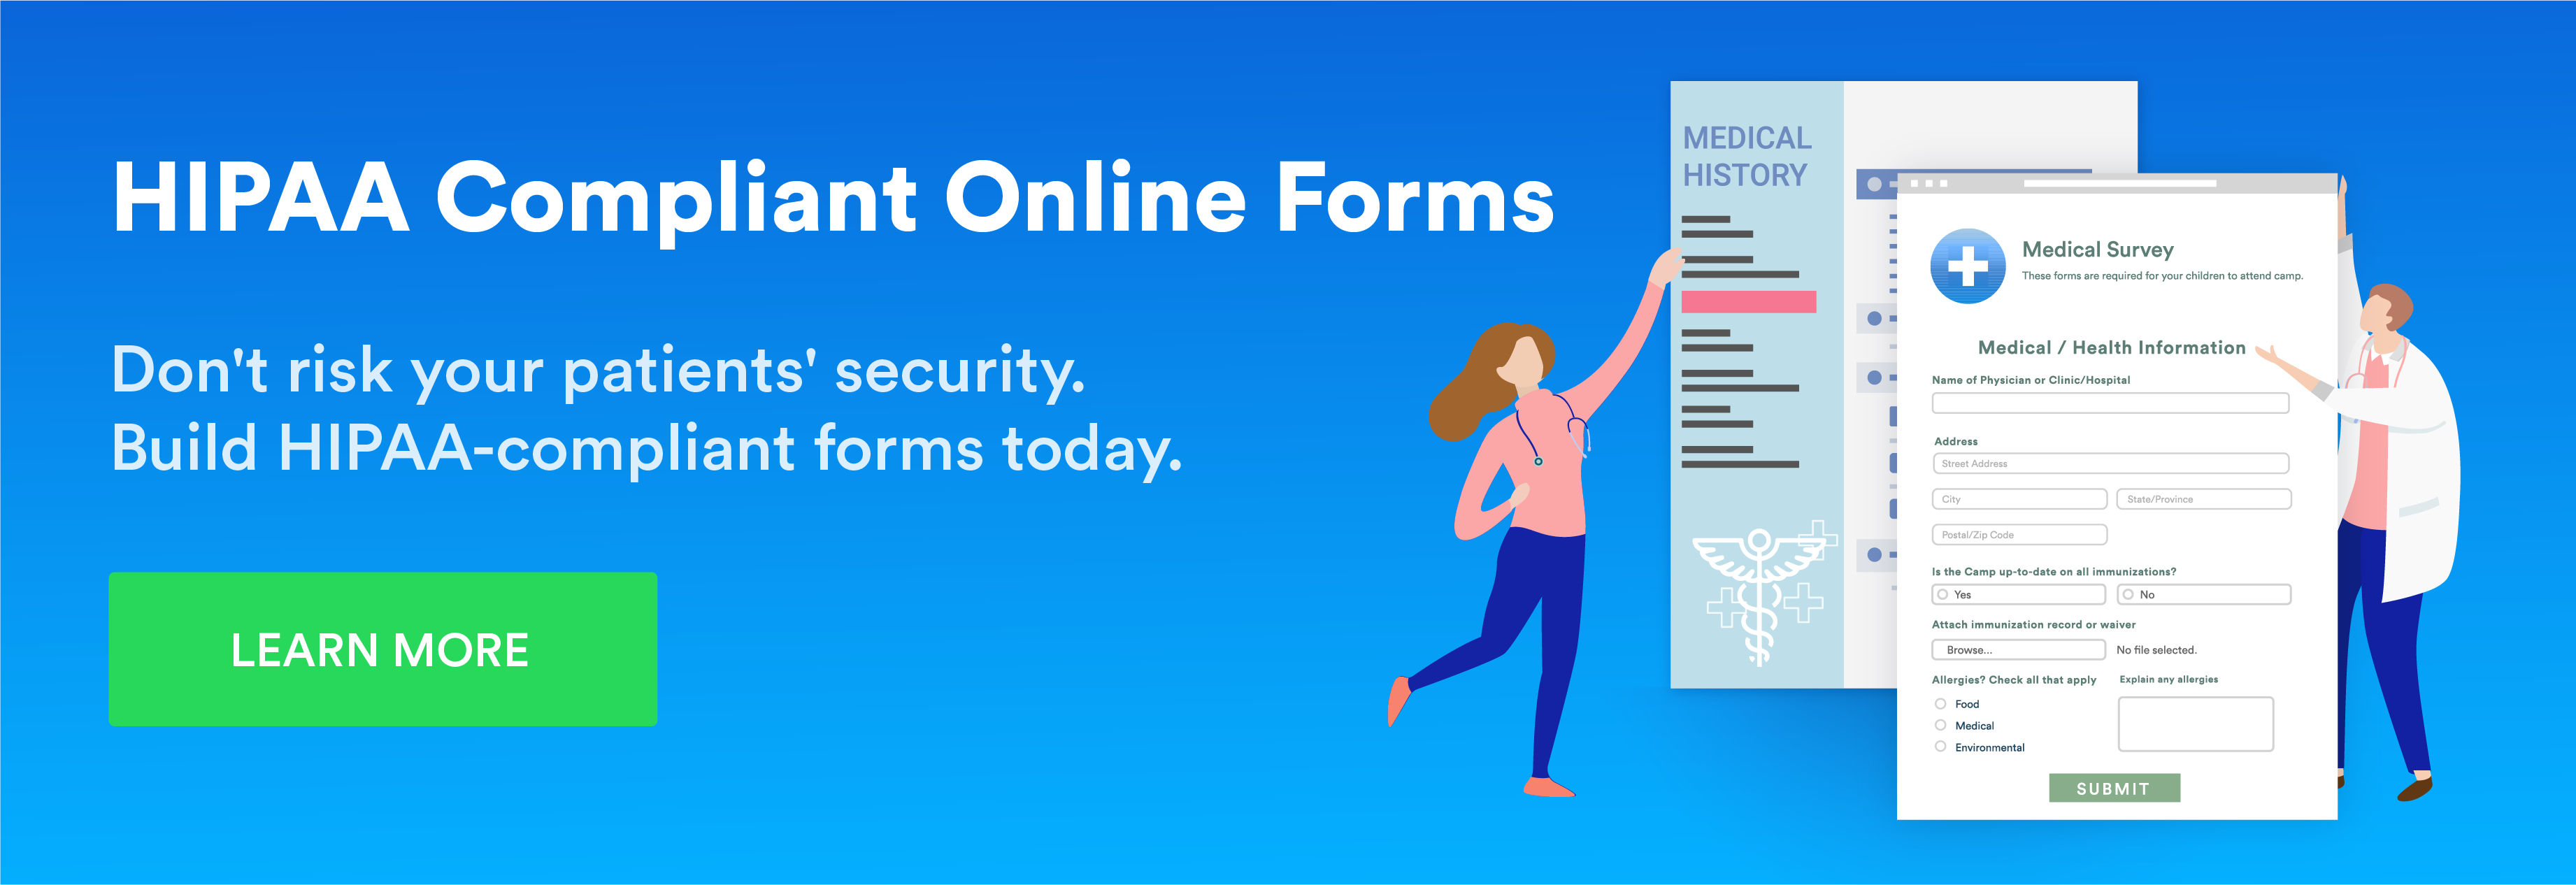 Don't risk your patients' security. Build HIPAA-compliant forms today.